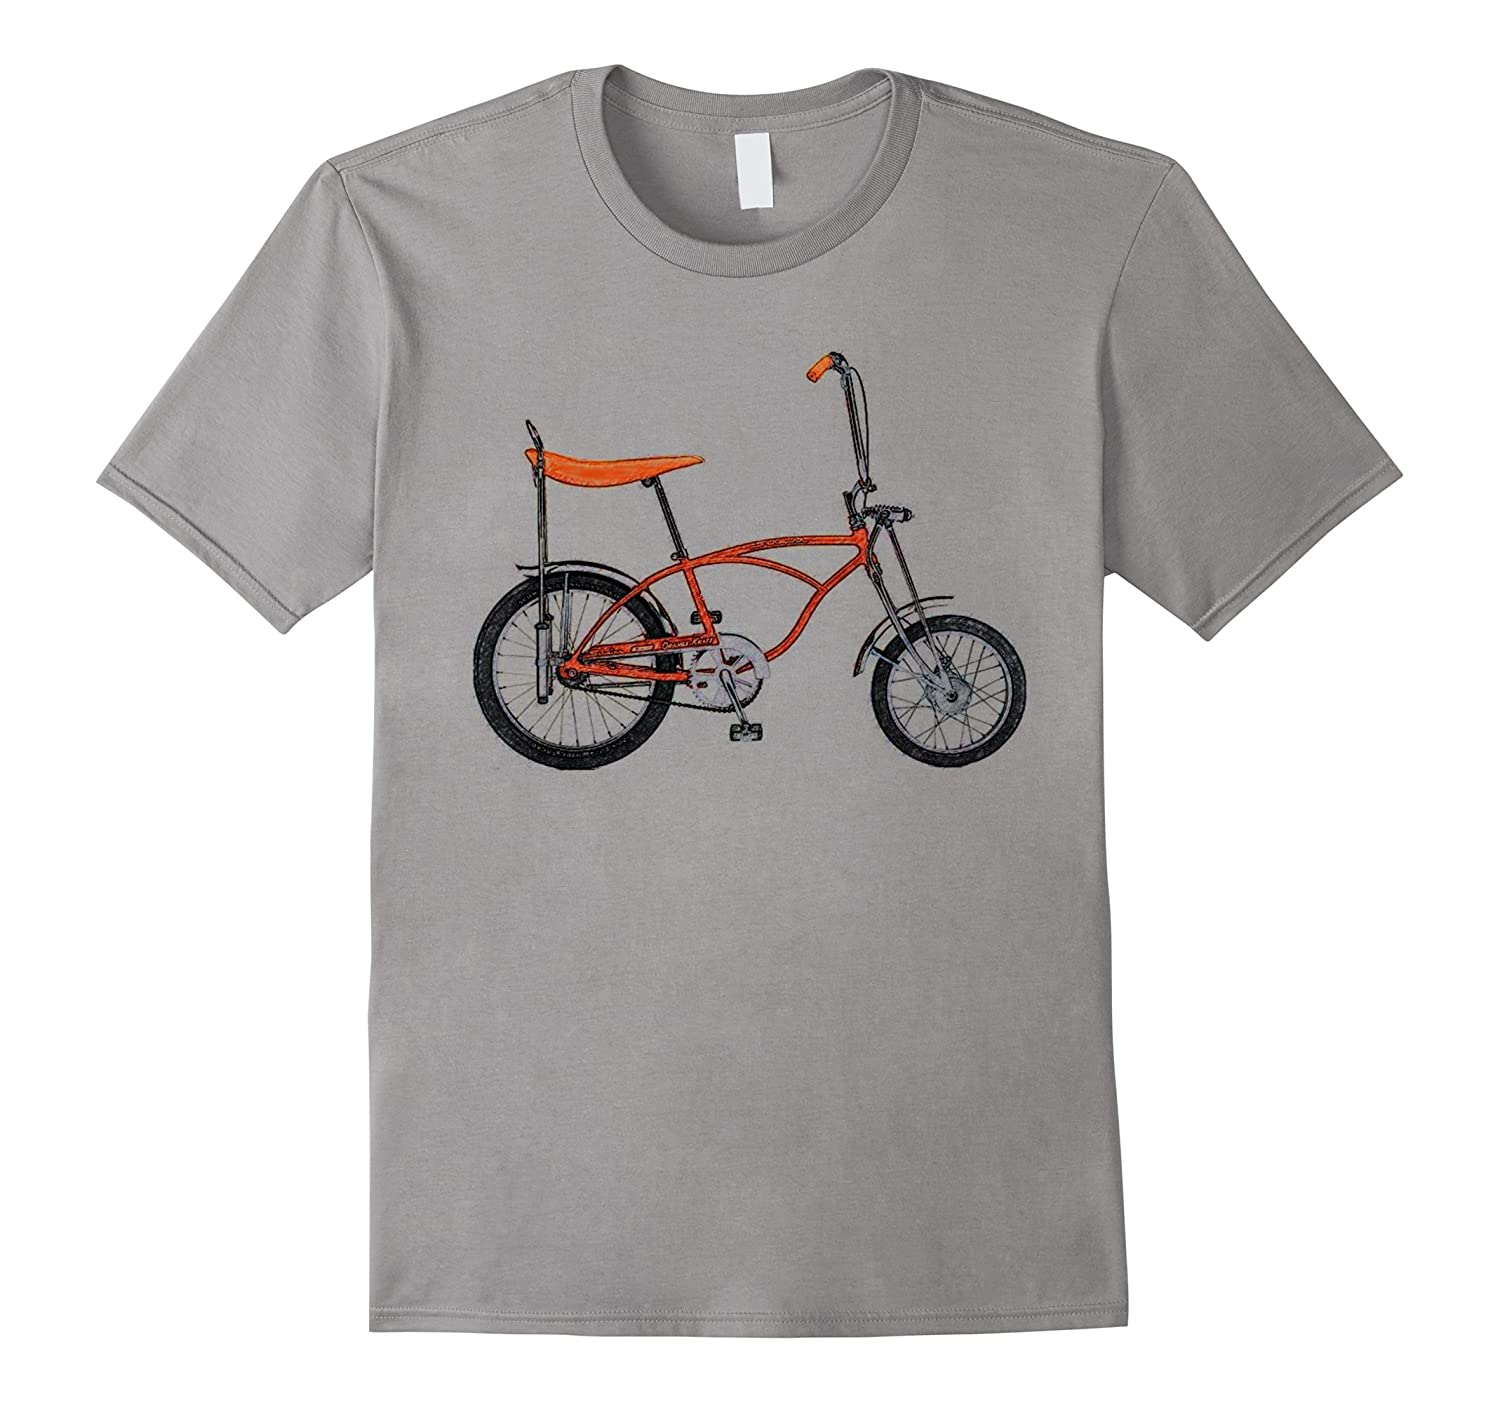 1970s Vintage Retro Banana Seat Bicycle Sketch Tee-RT